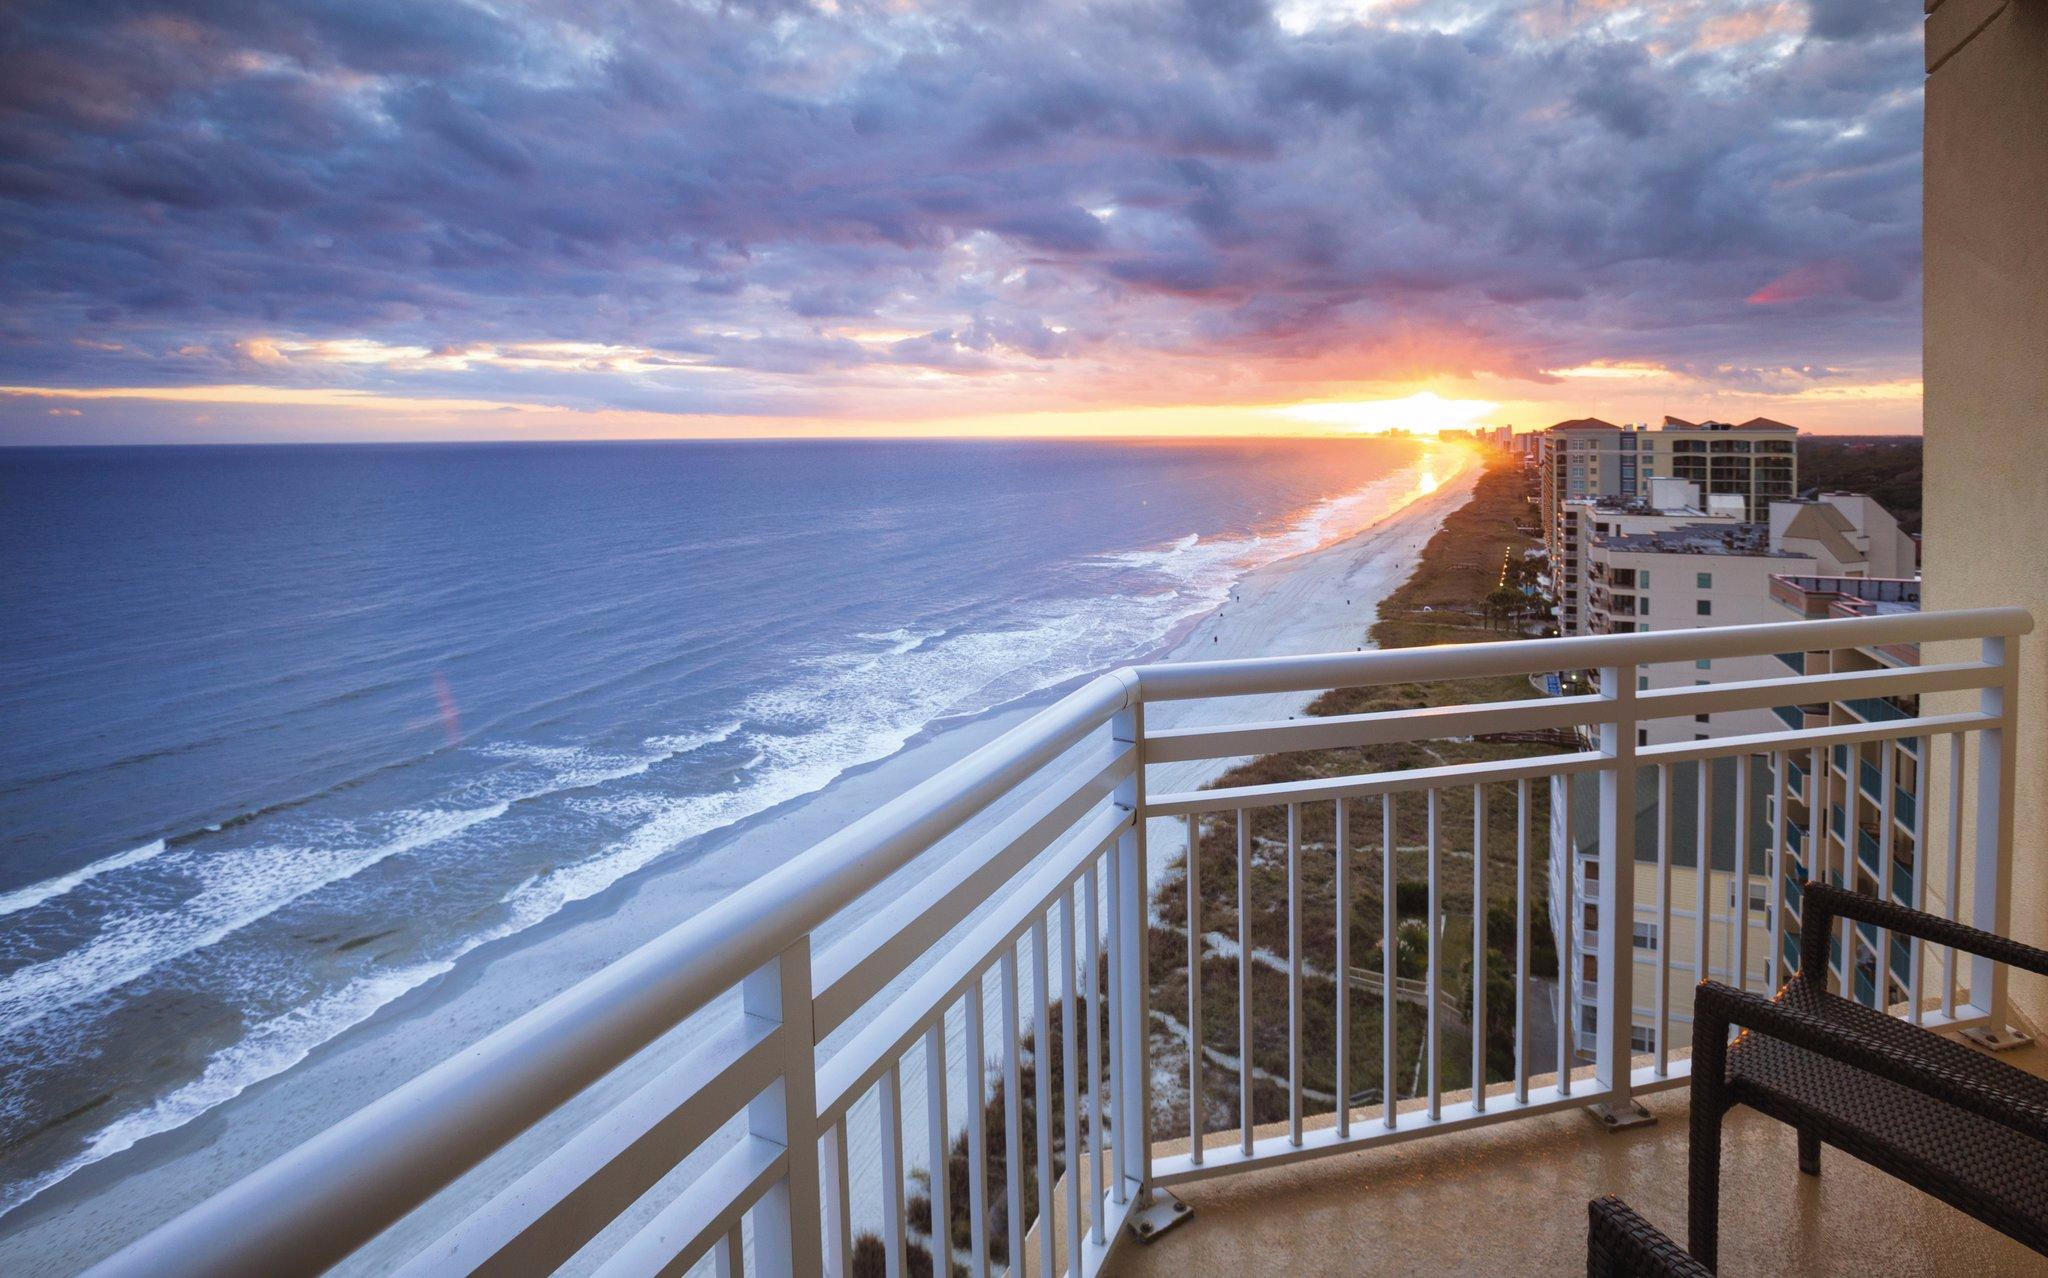 Apartment Ocean Blvd 1 Bedroom 1 Bathroom photo 20364410